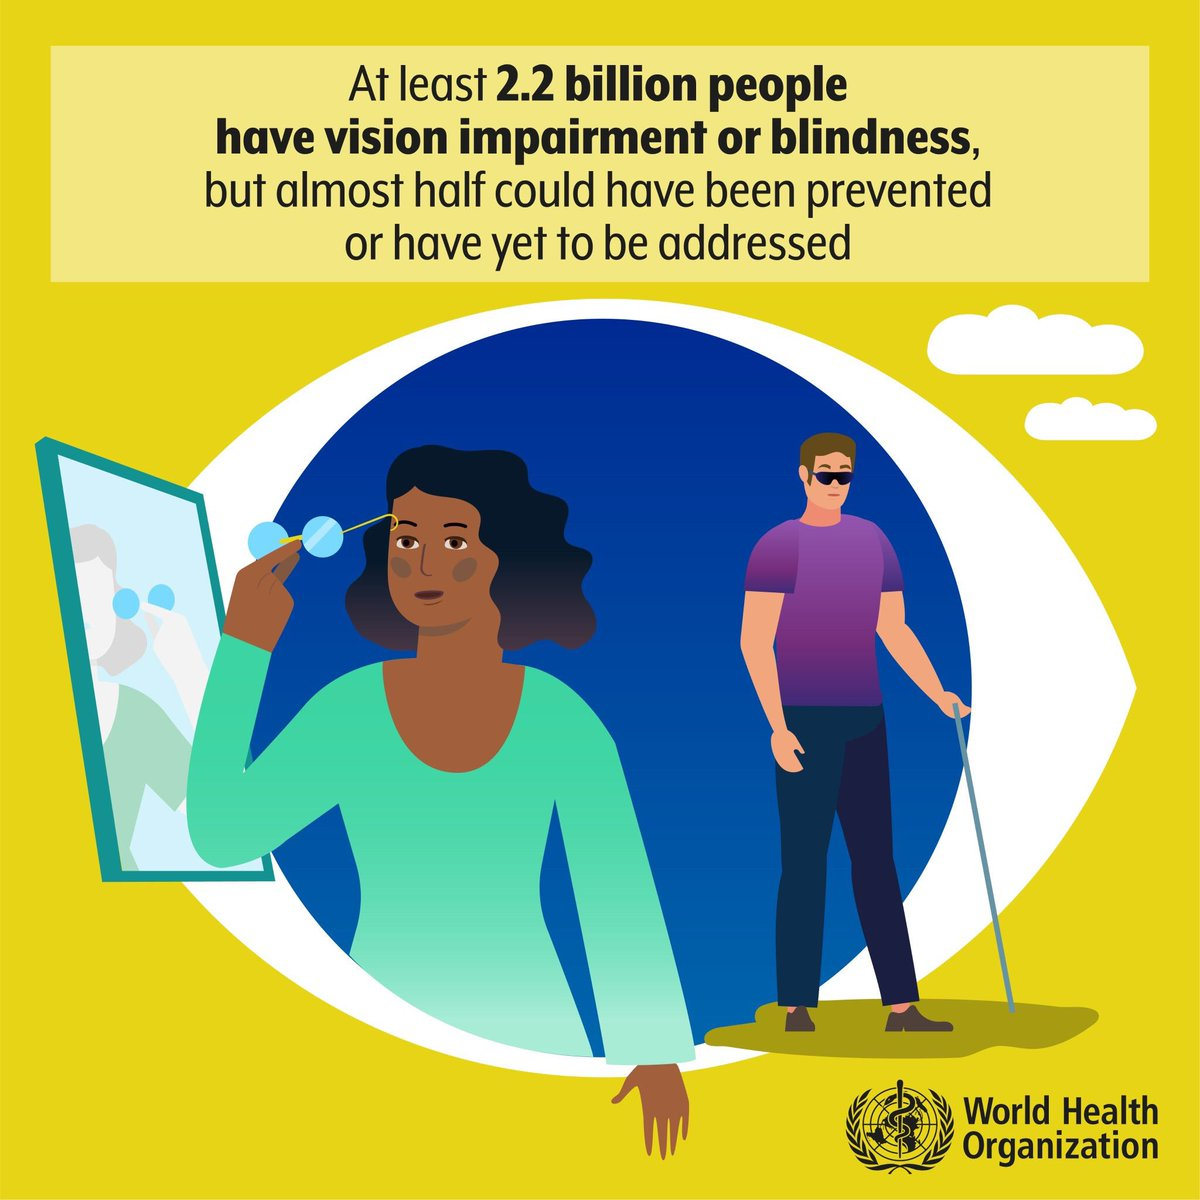 More than 1 billion 👤 worldwide are living with vision impairment because they do not get the care they need for eye conditions. Modifiable risk factors include smoking, nutrition, occupational & recreational activities. 📖 @WHO World Report on Vision: bit.ly/2ofvys3